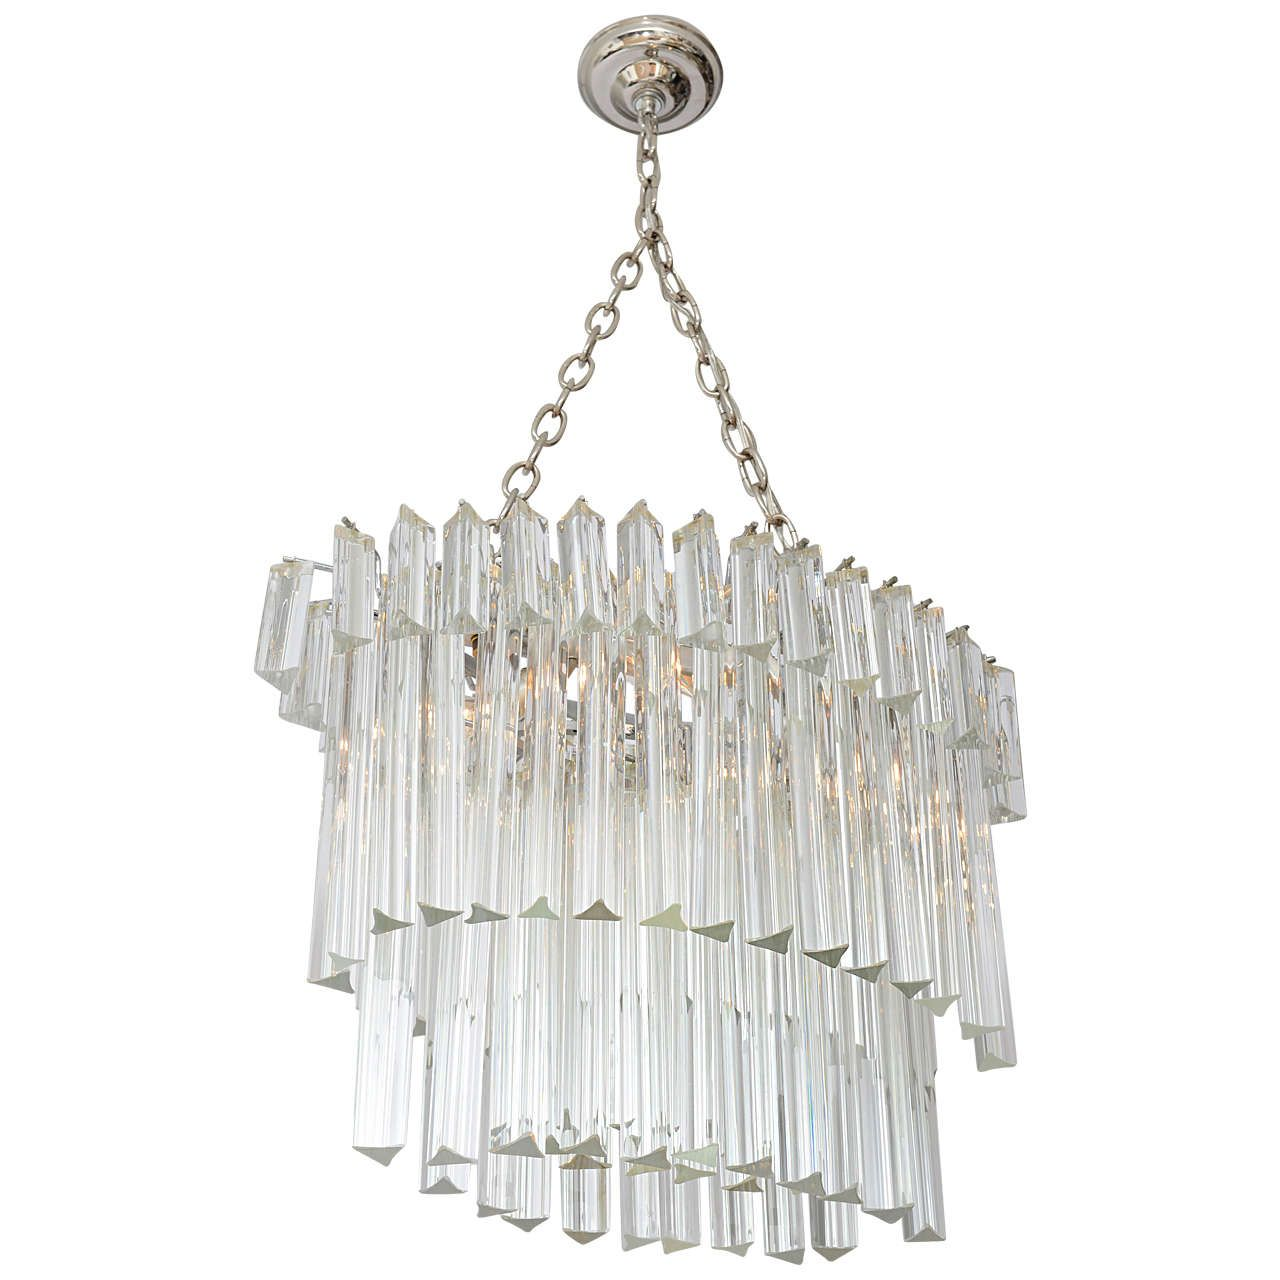 Venini ThreeTier Oval Glass Prism Chandelier – Glass Prisms for Chandeliers